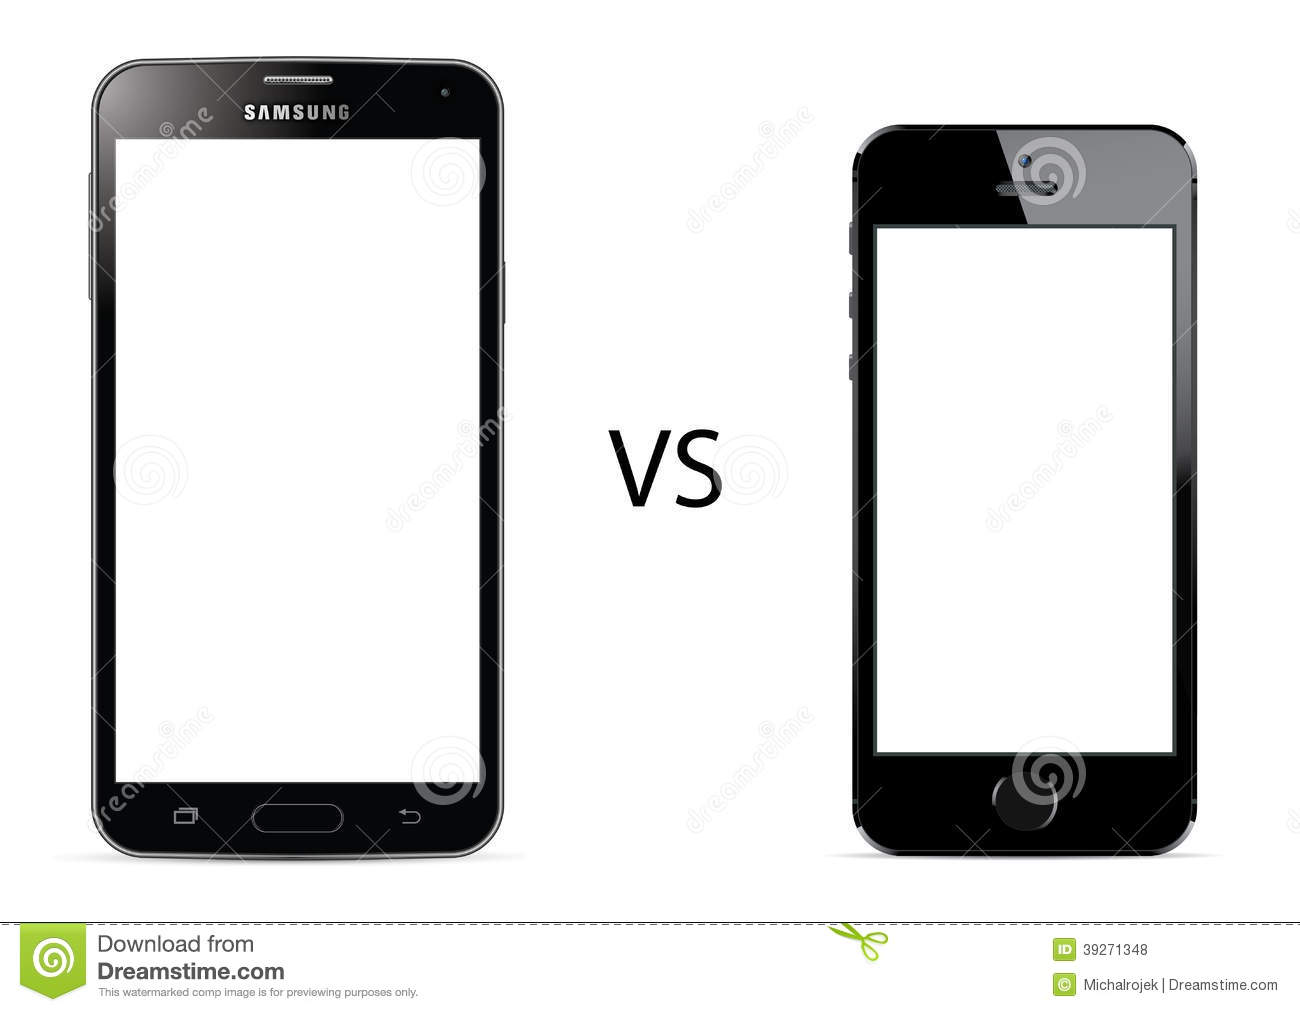 samsung vs. apple essay Apple and samsung have long been the titans of the tech industry, dominating  the smartphone market with their shiny gadgets but how do the.